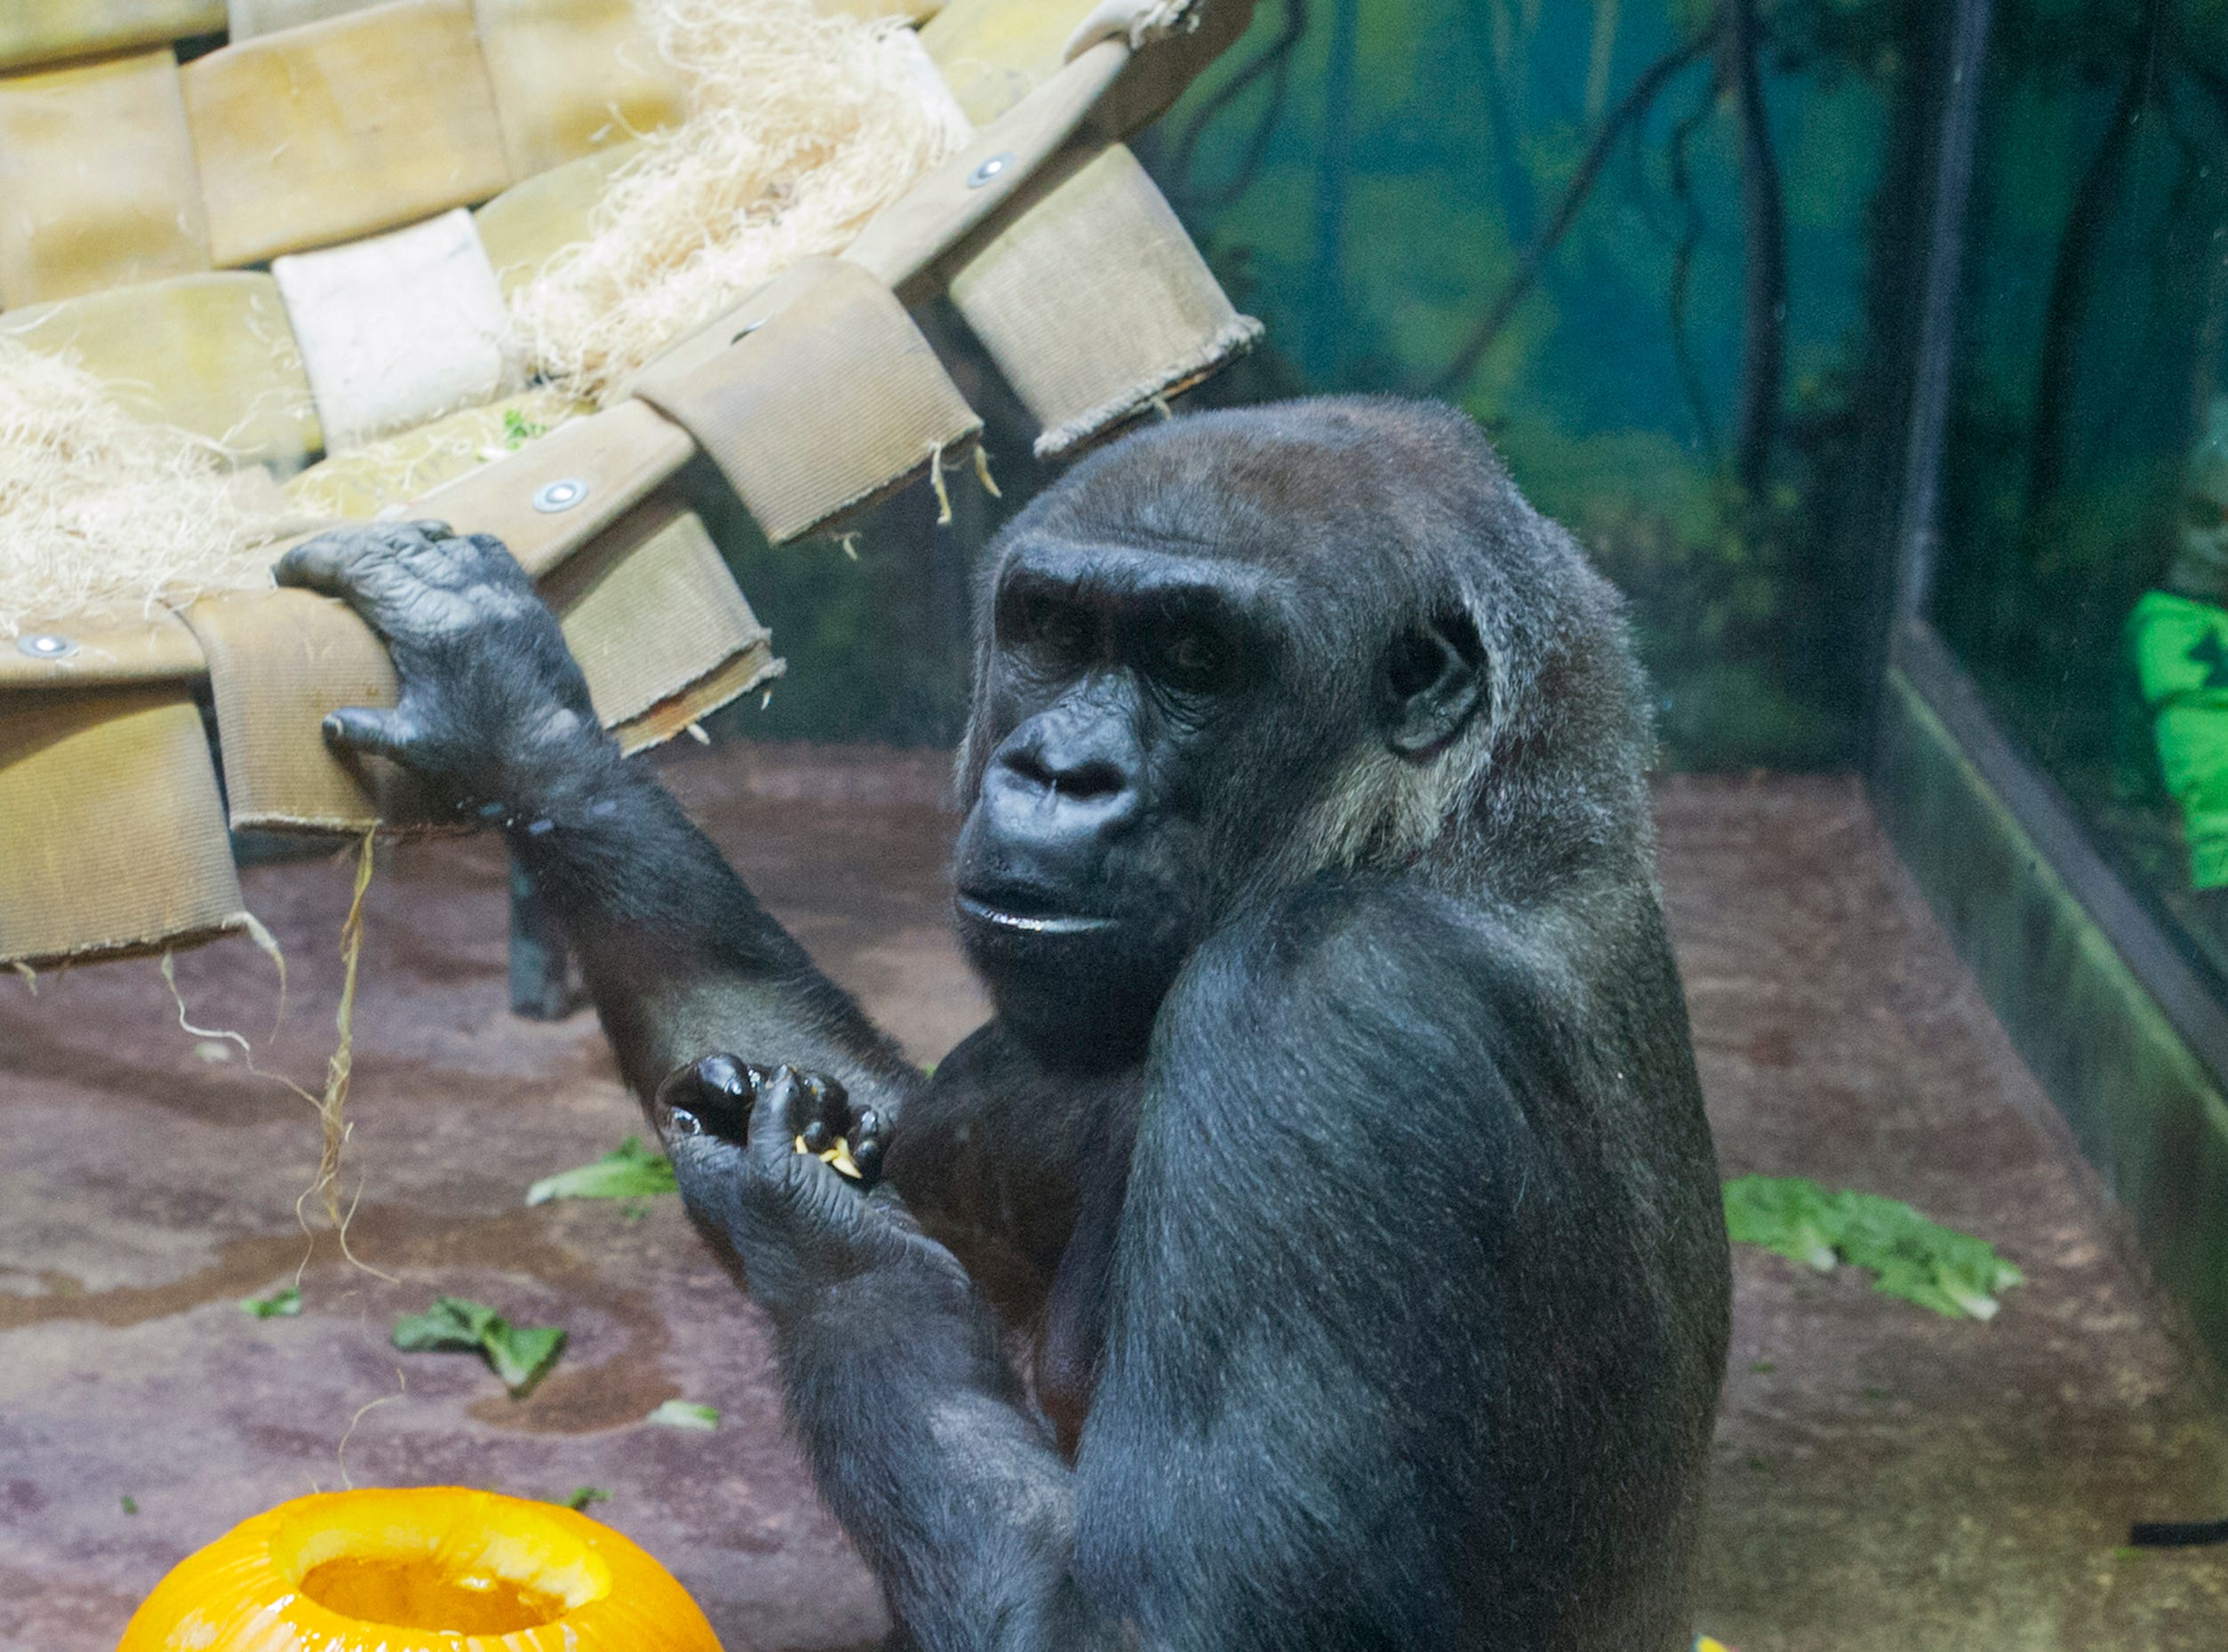 Bandia, a 21-year-old gorilla at the Louisville Zoo's annual pumpkin smash holds a hand full of seeds.. Pumpkins were being fed to the animals left over from the zoo's Halloween event. November 04, 2018